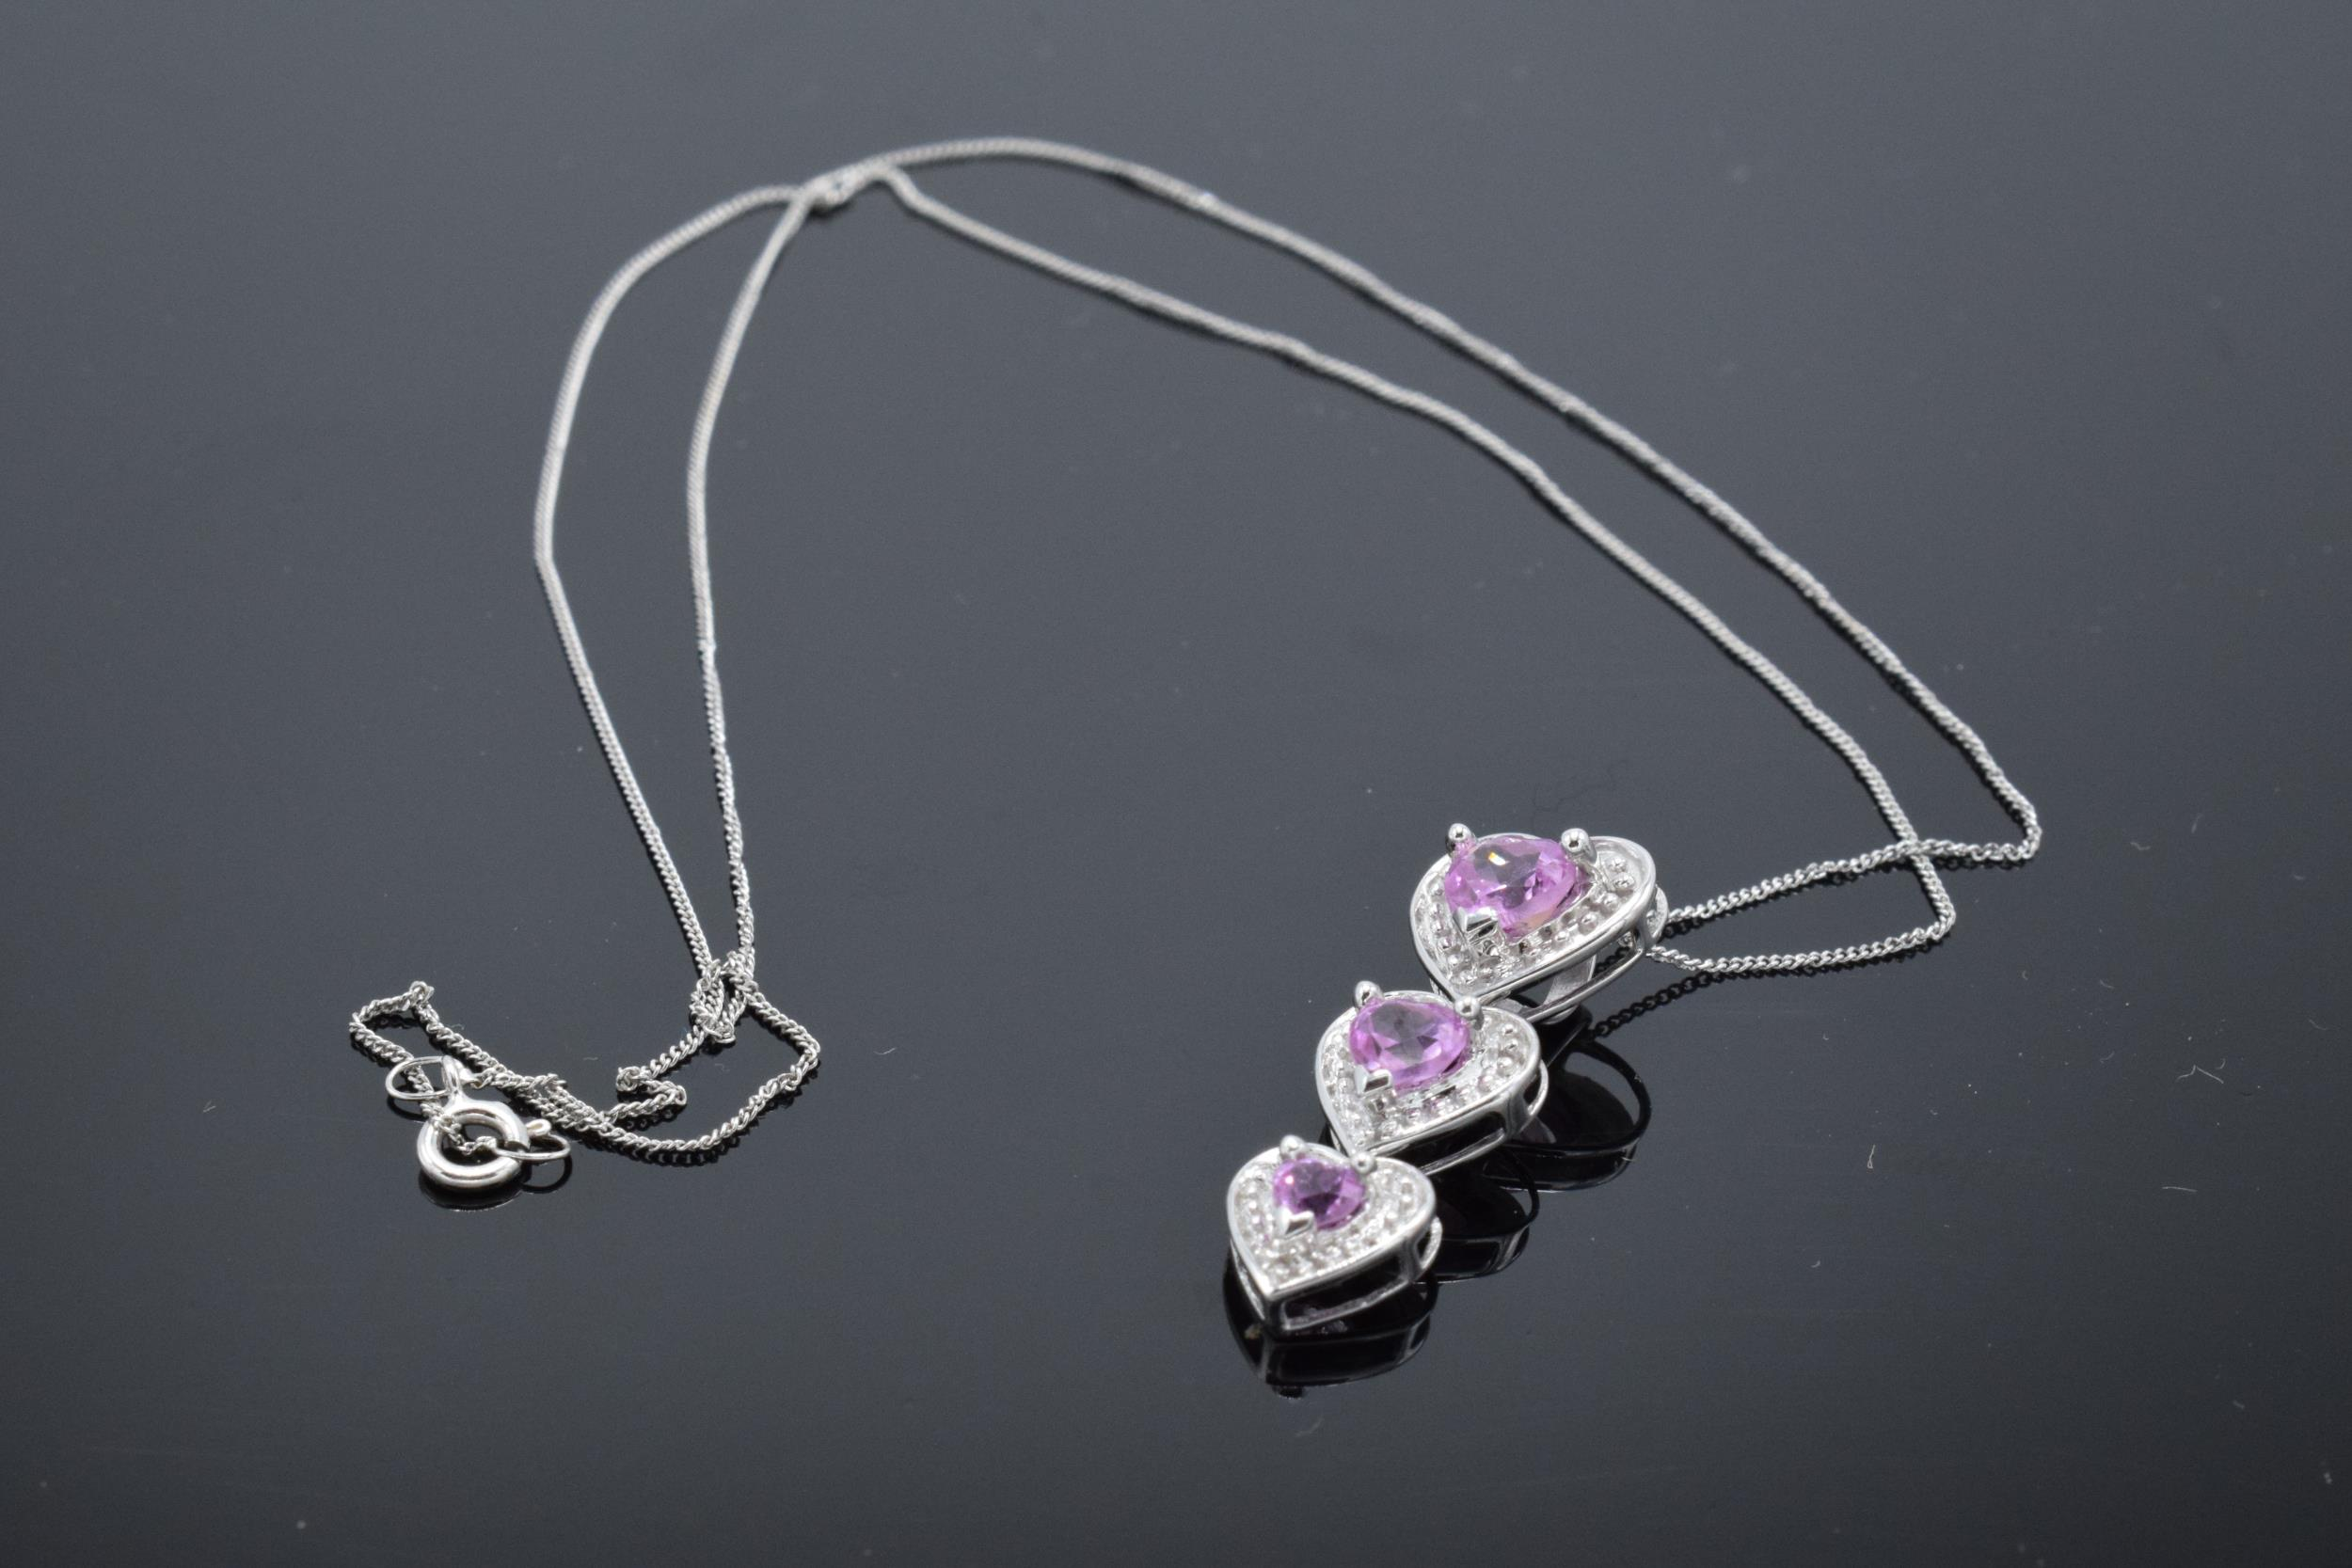 A 10ct white gold triple-heart pendant set with pink topaz and 3 diamonds on a 9ct white gold chain. - Image 5 of 5